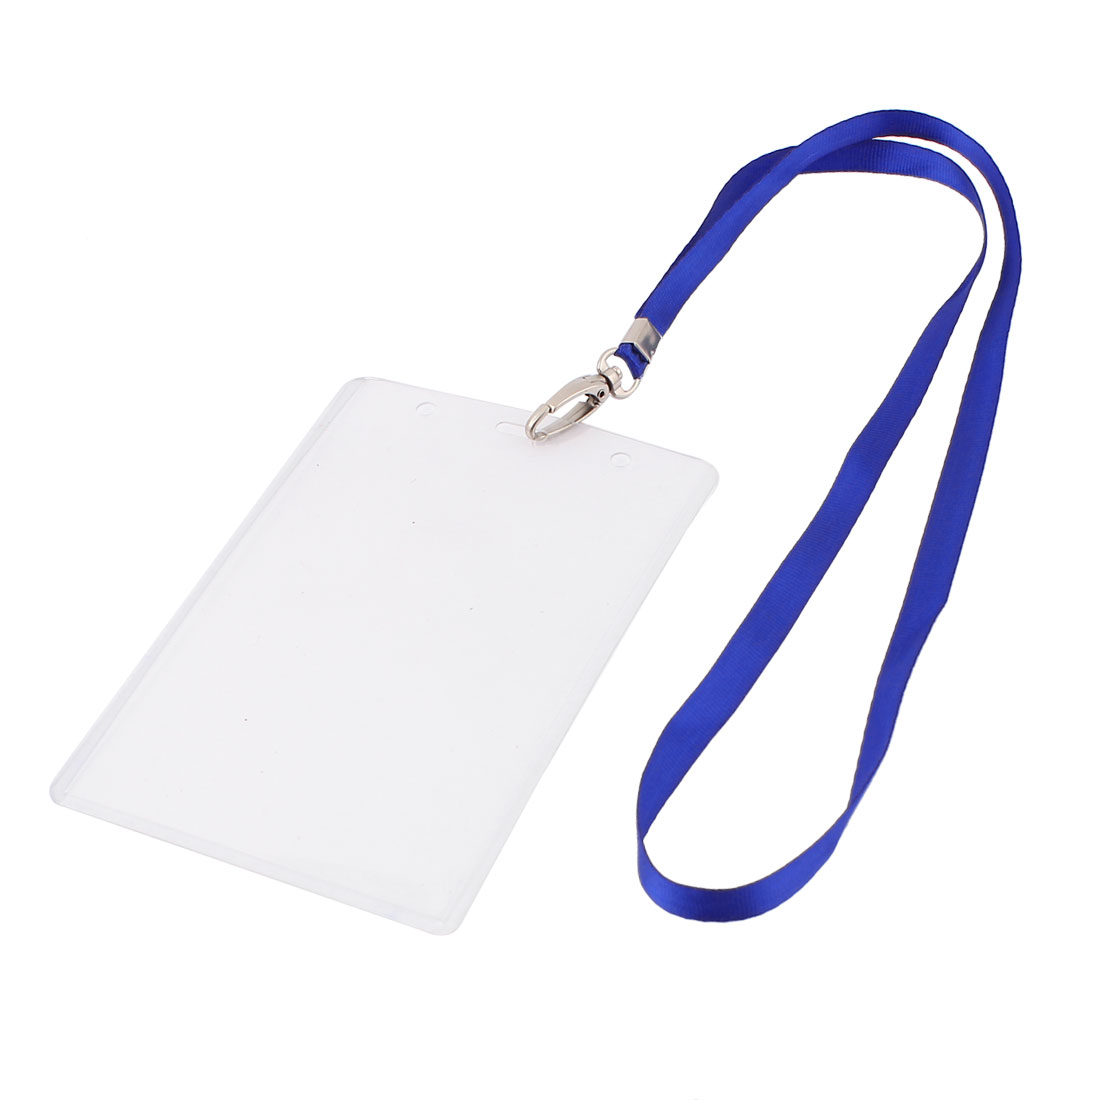 Plastic Vertical Photo Name Tag Company Position ID Work Badge Card Holder Blue